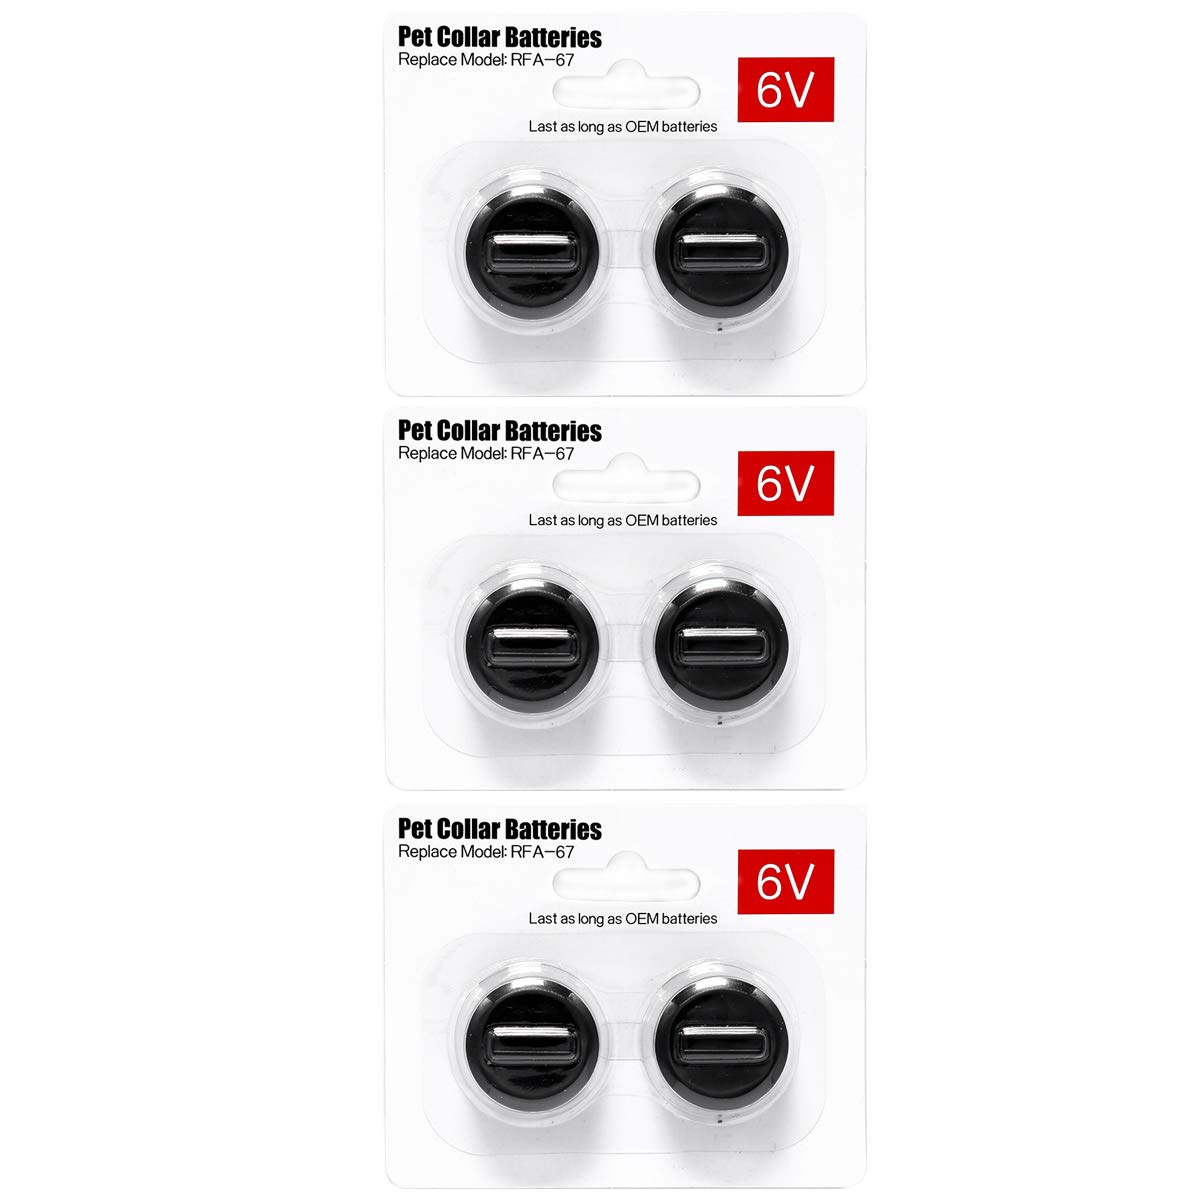 6Packs Pet Collar Batteries Compatible with PetSafe RFA-67 6 Volt Replacement Batteries by LiBatter